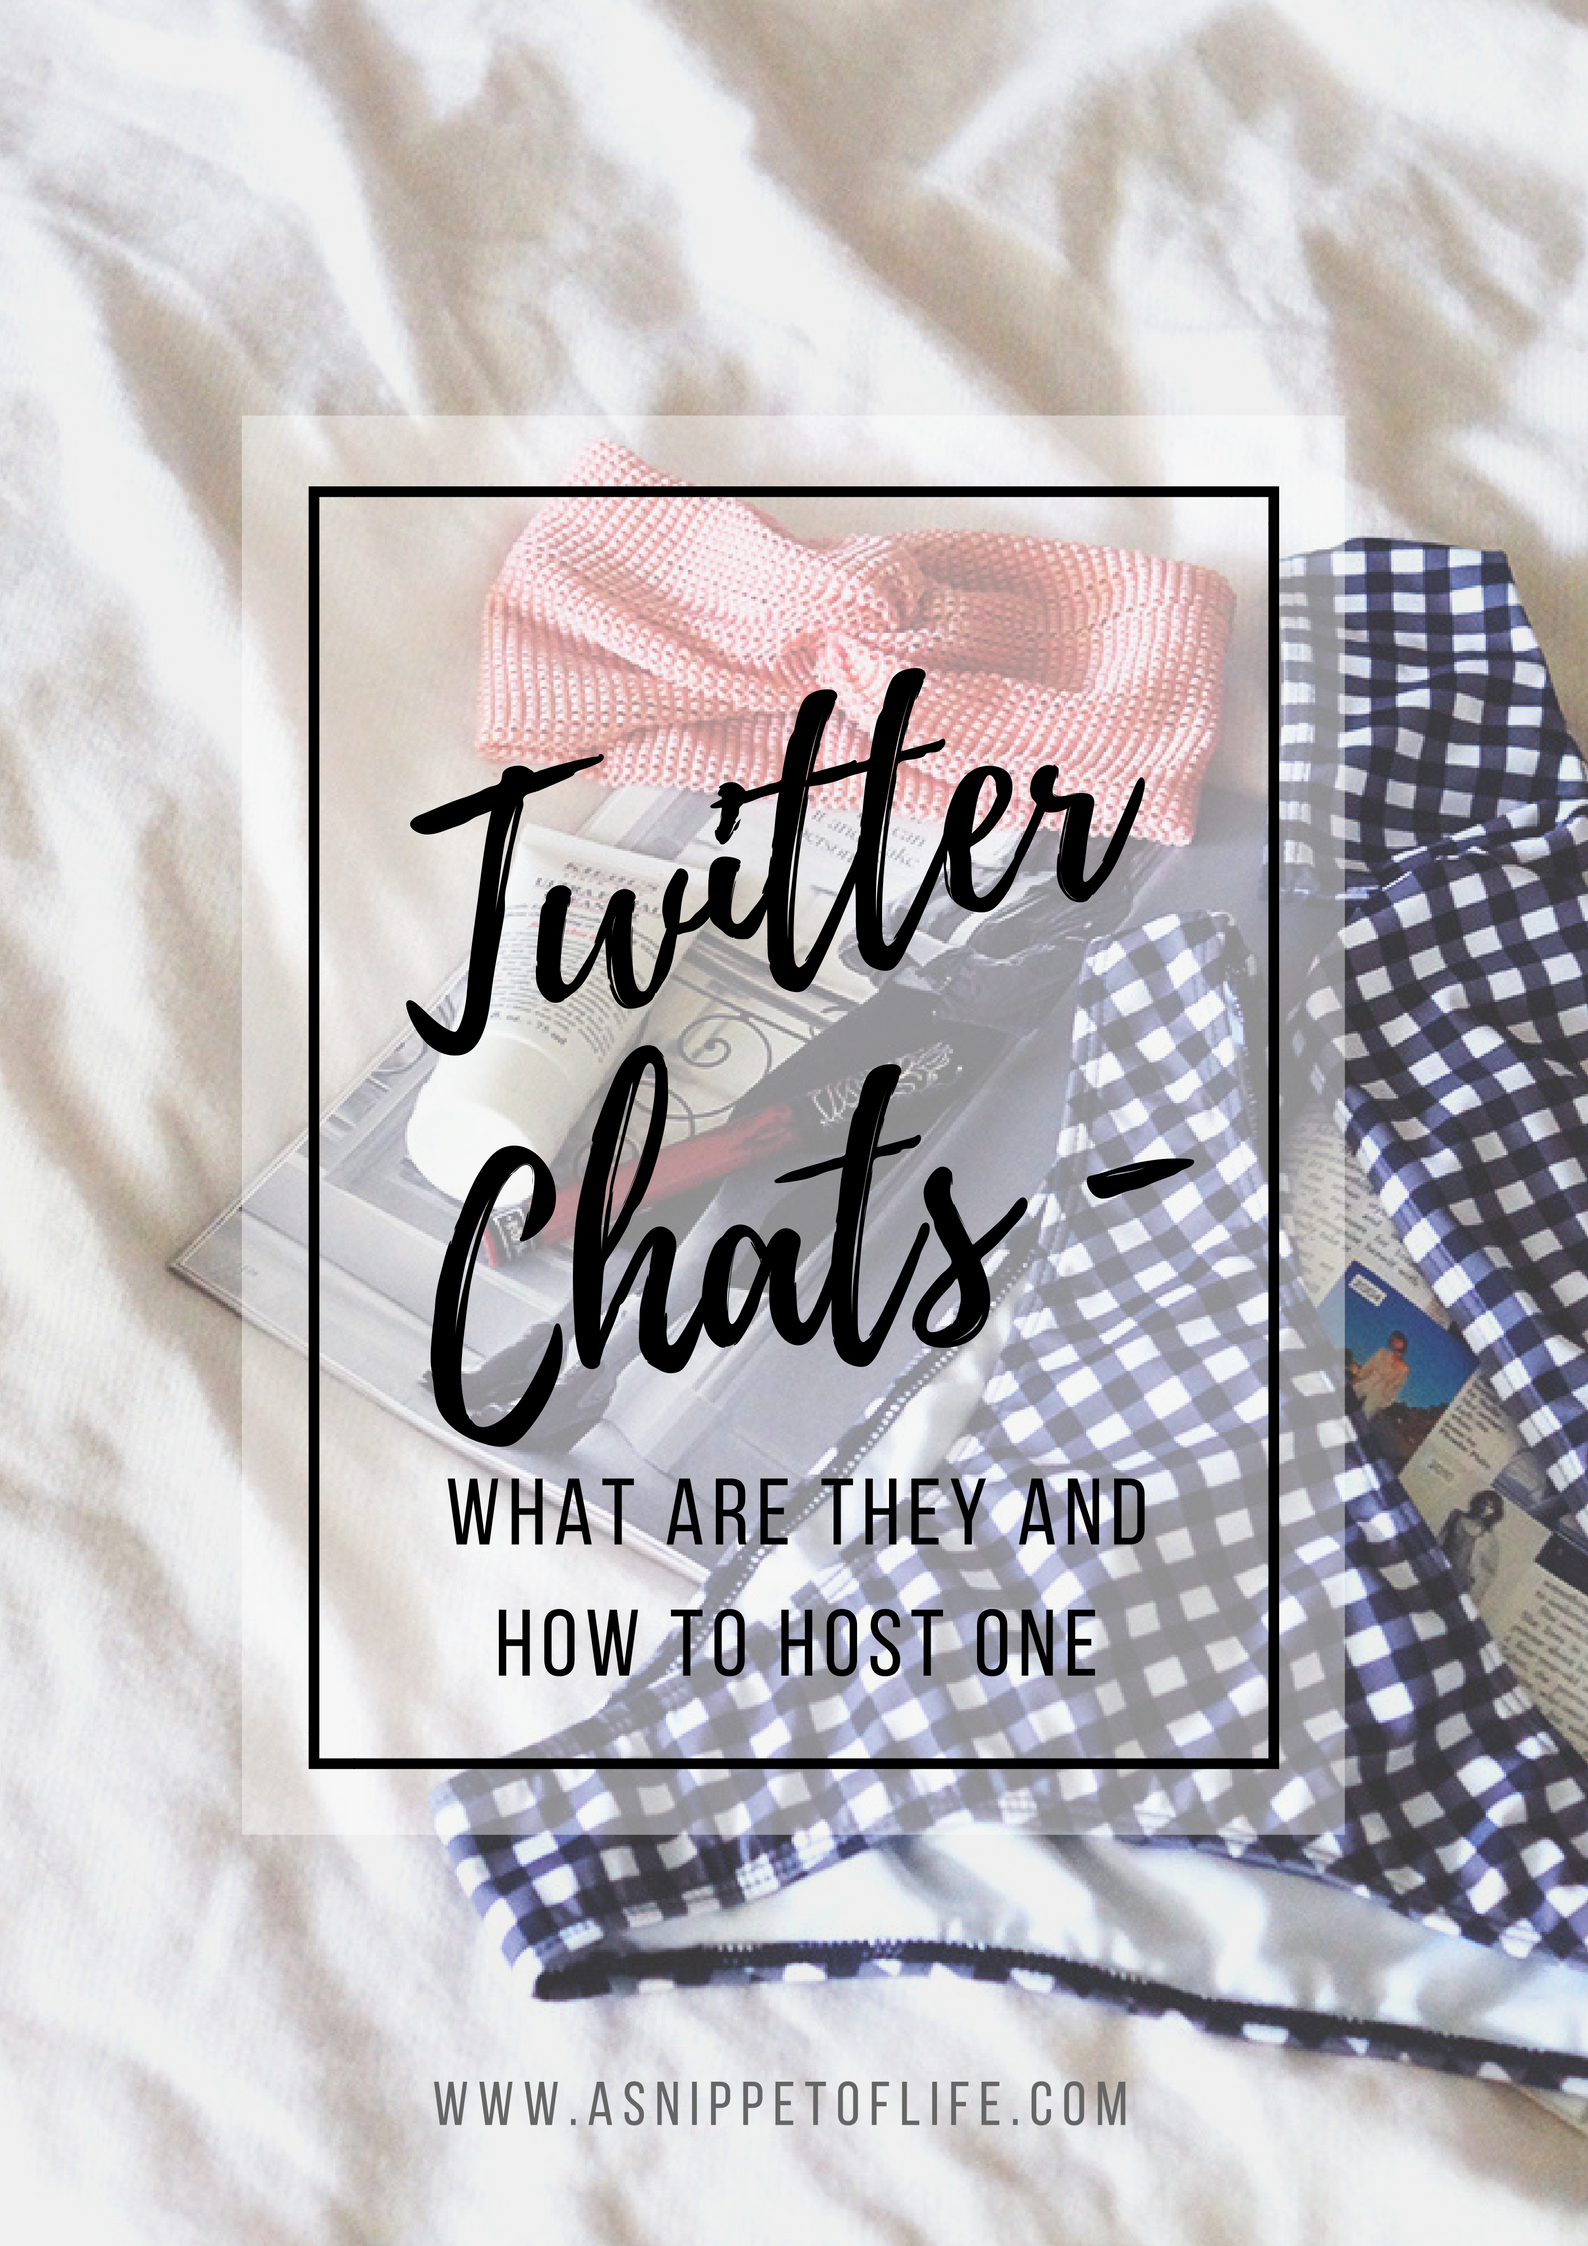 Twitter Chats - what are they and how to host one